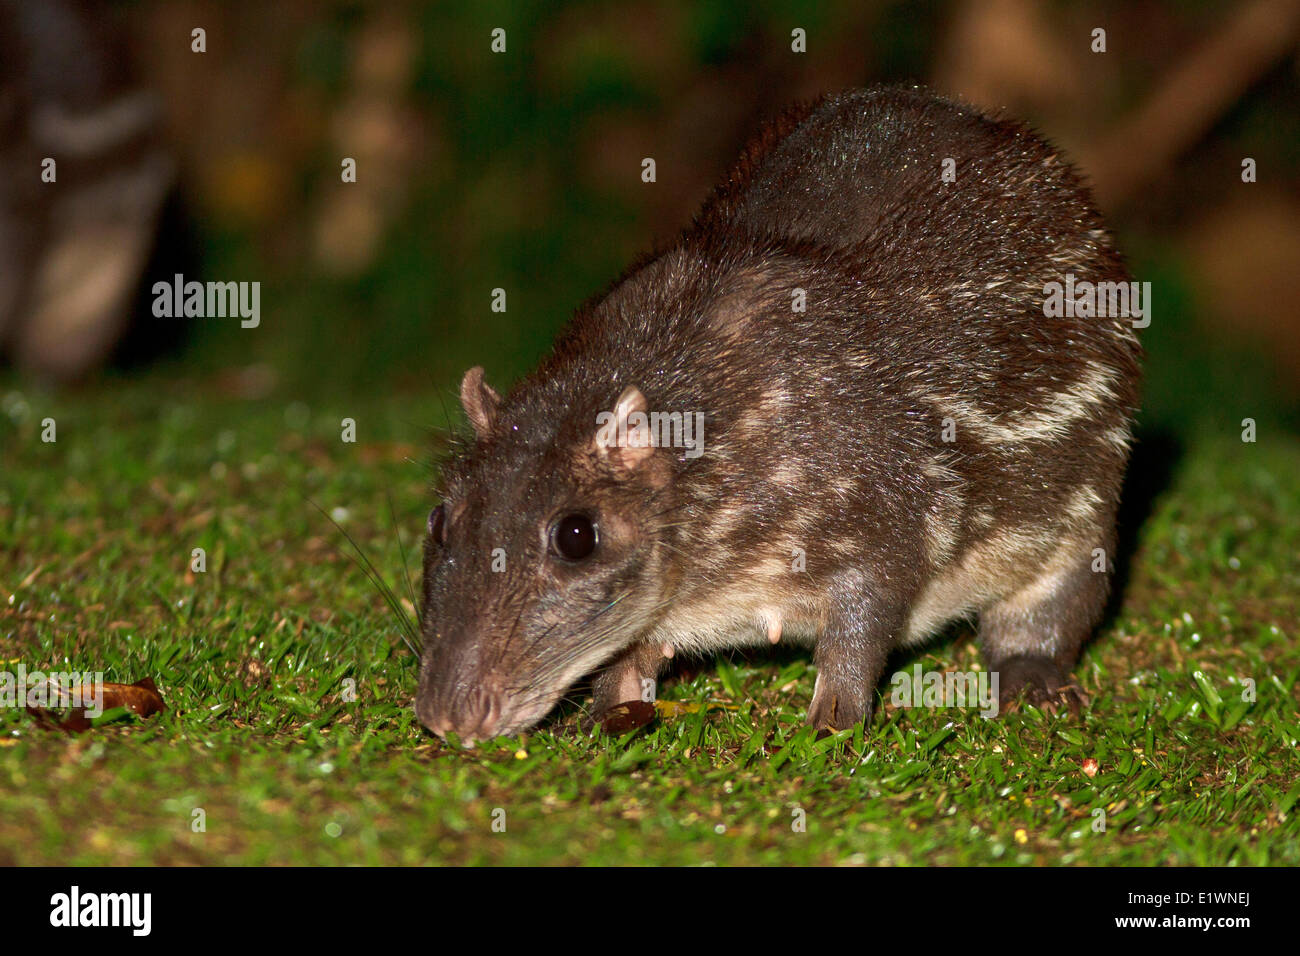 A Paca feeding in the forest at night in Costa Rica. - Stock Image